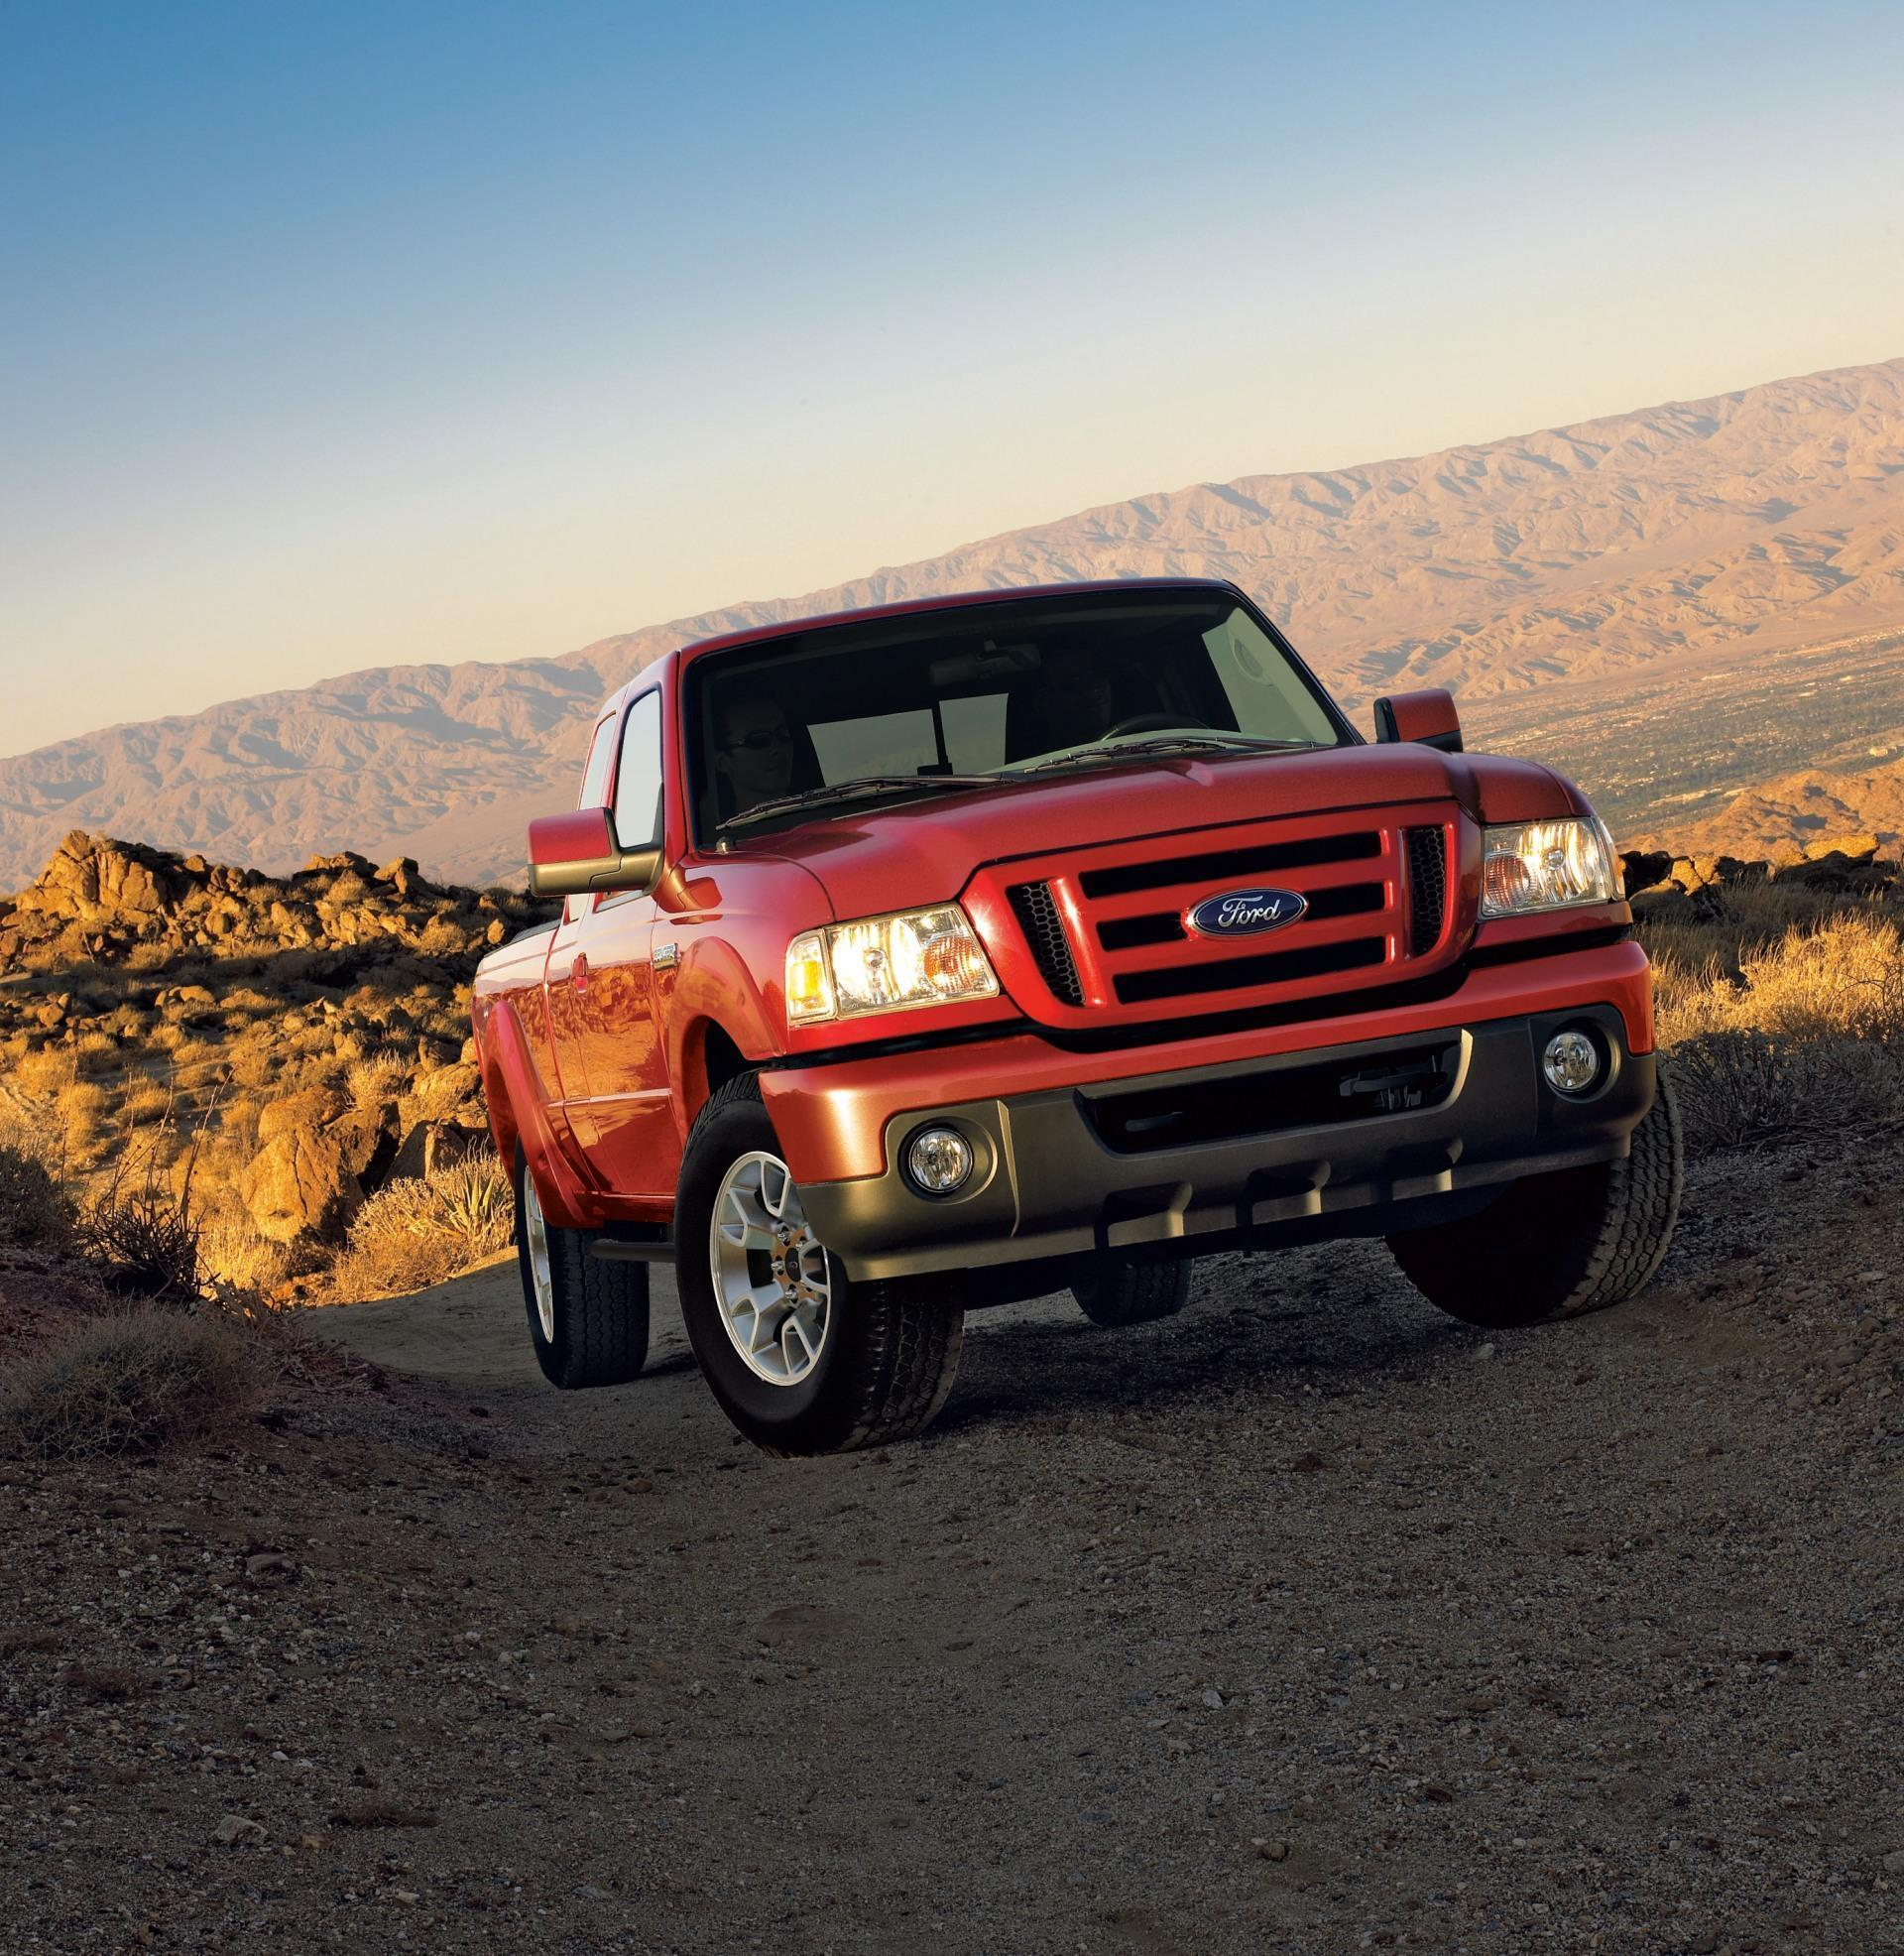 Ford Ranger Wallpapers Wallpaper Cave